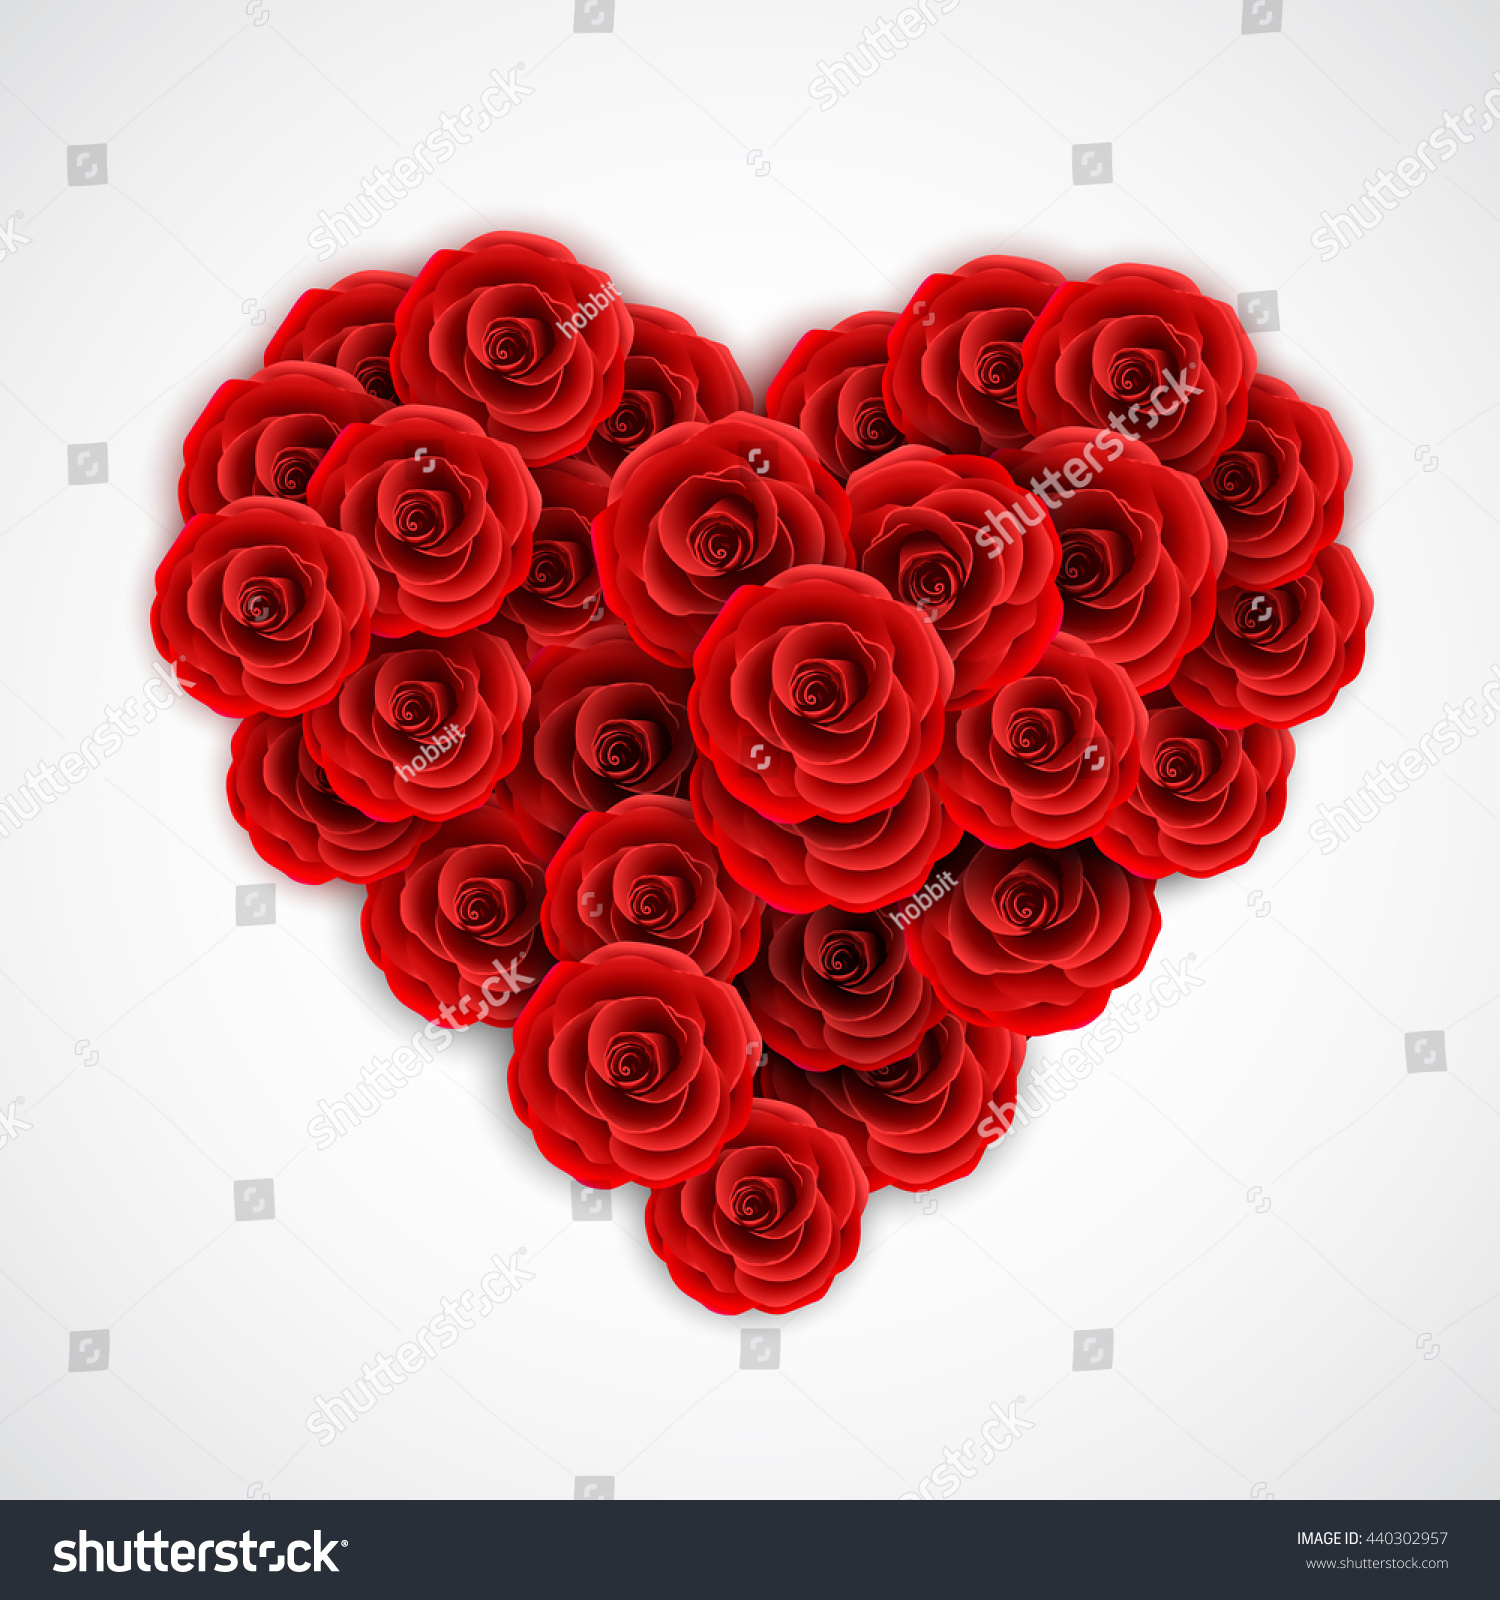 Red Roses Form Heart Rose Decoration Stock Vector (Royalty Free ...